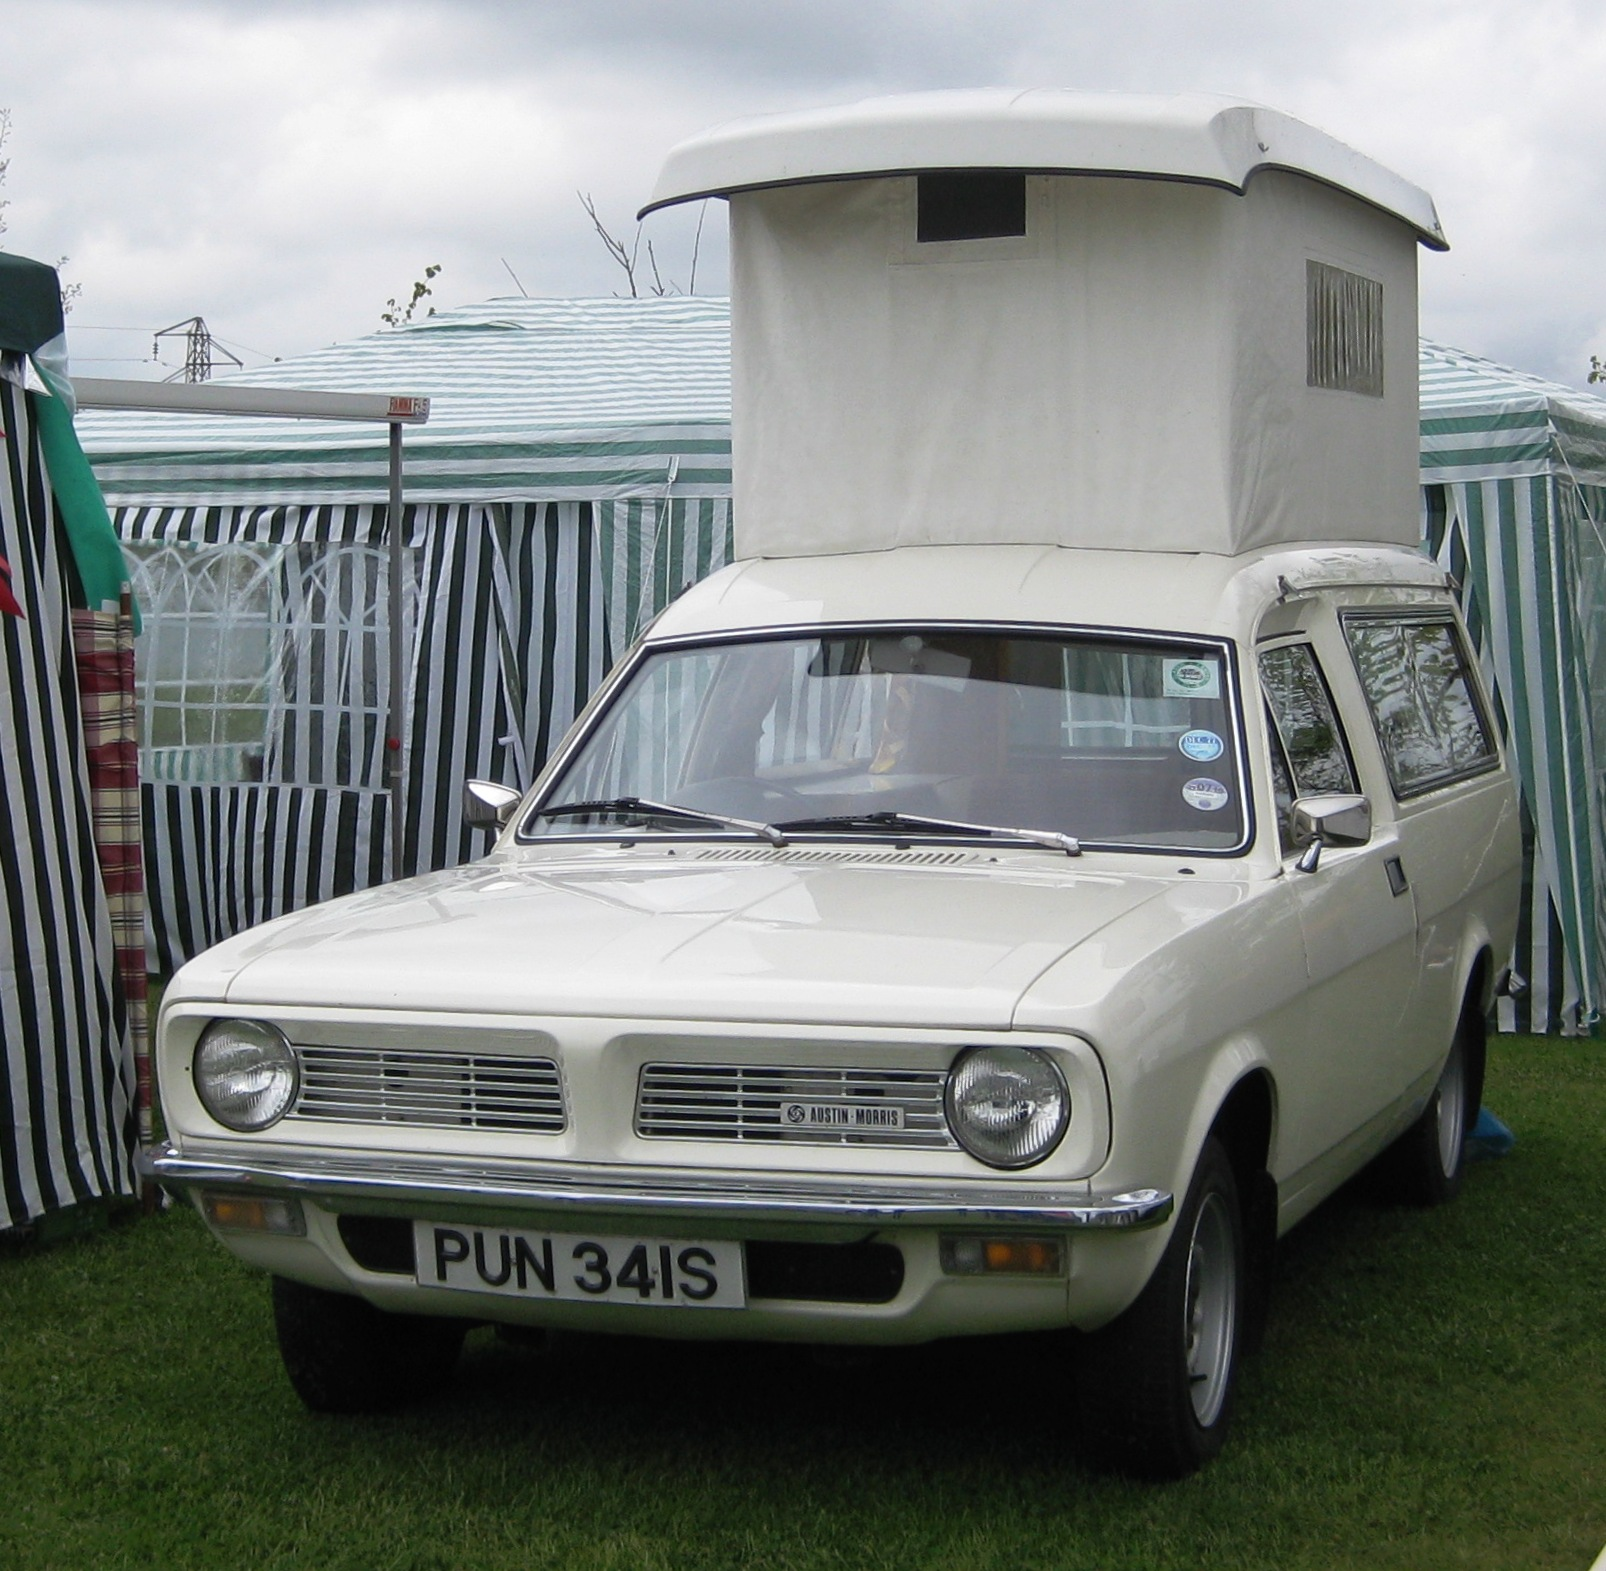 Austin-Morris Marina Motor caravan at Battlesbridge.JPG